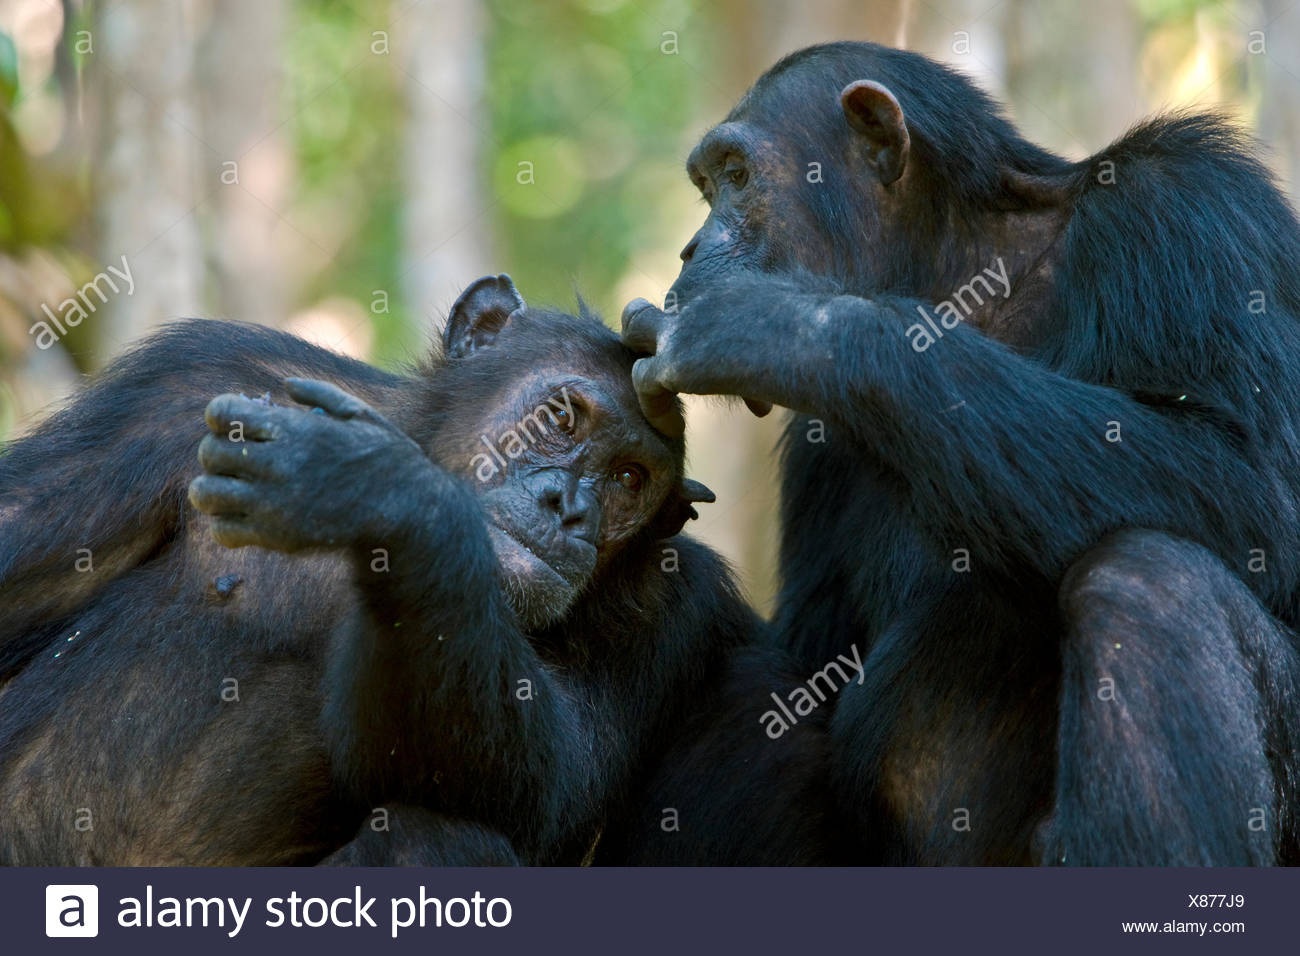 Chimpanzee (Pan troglodytes) being groomed whilst eating